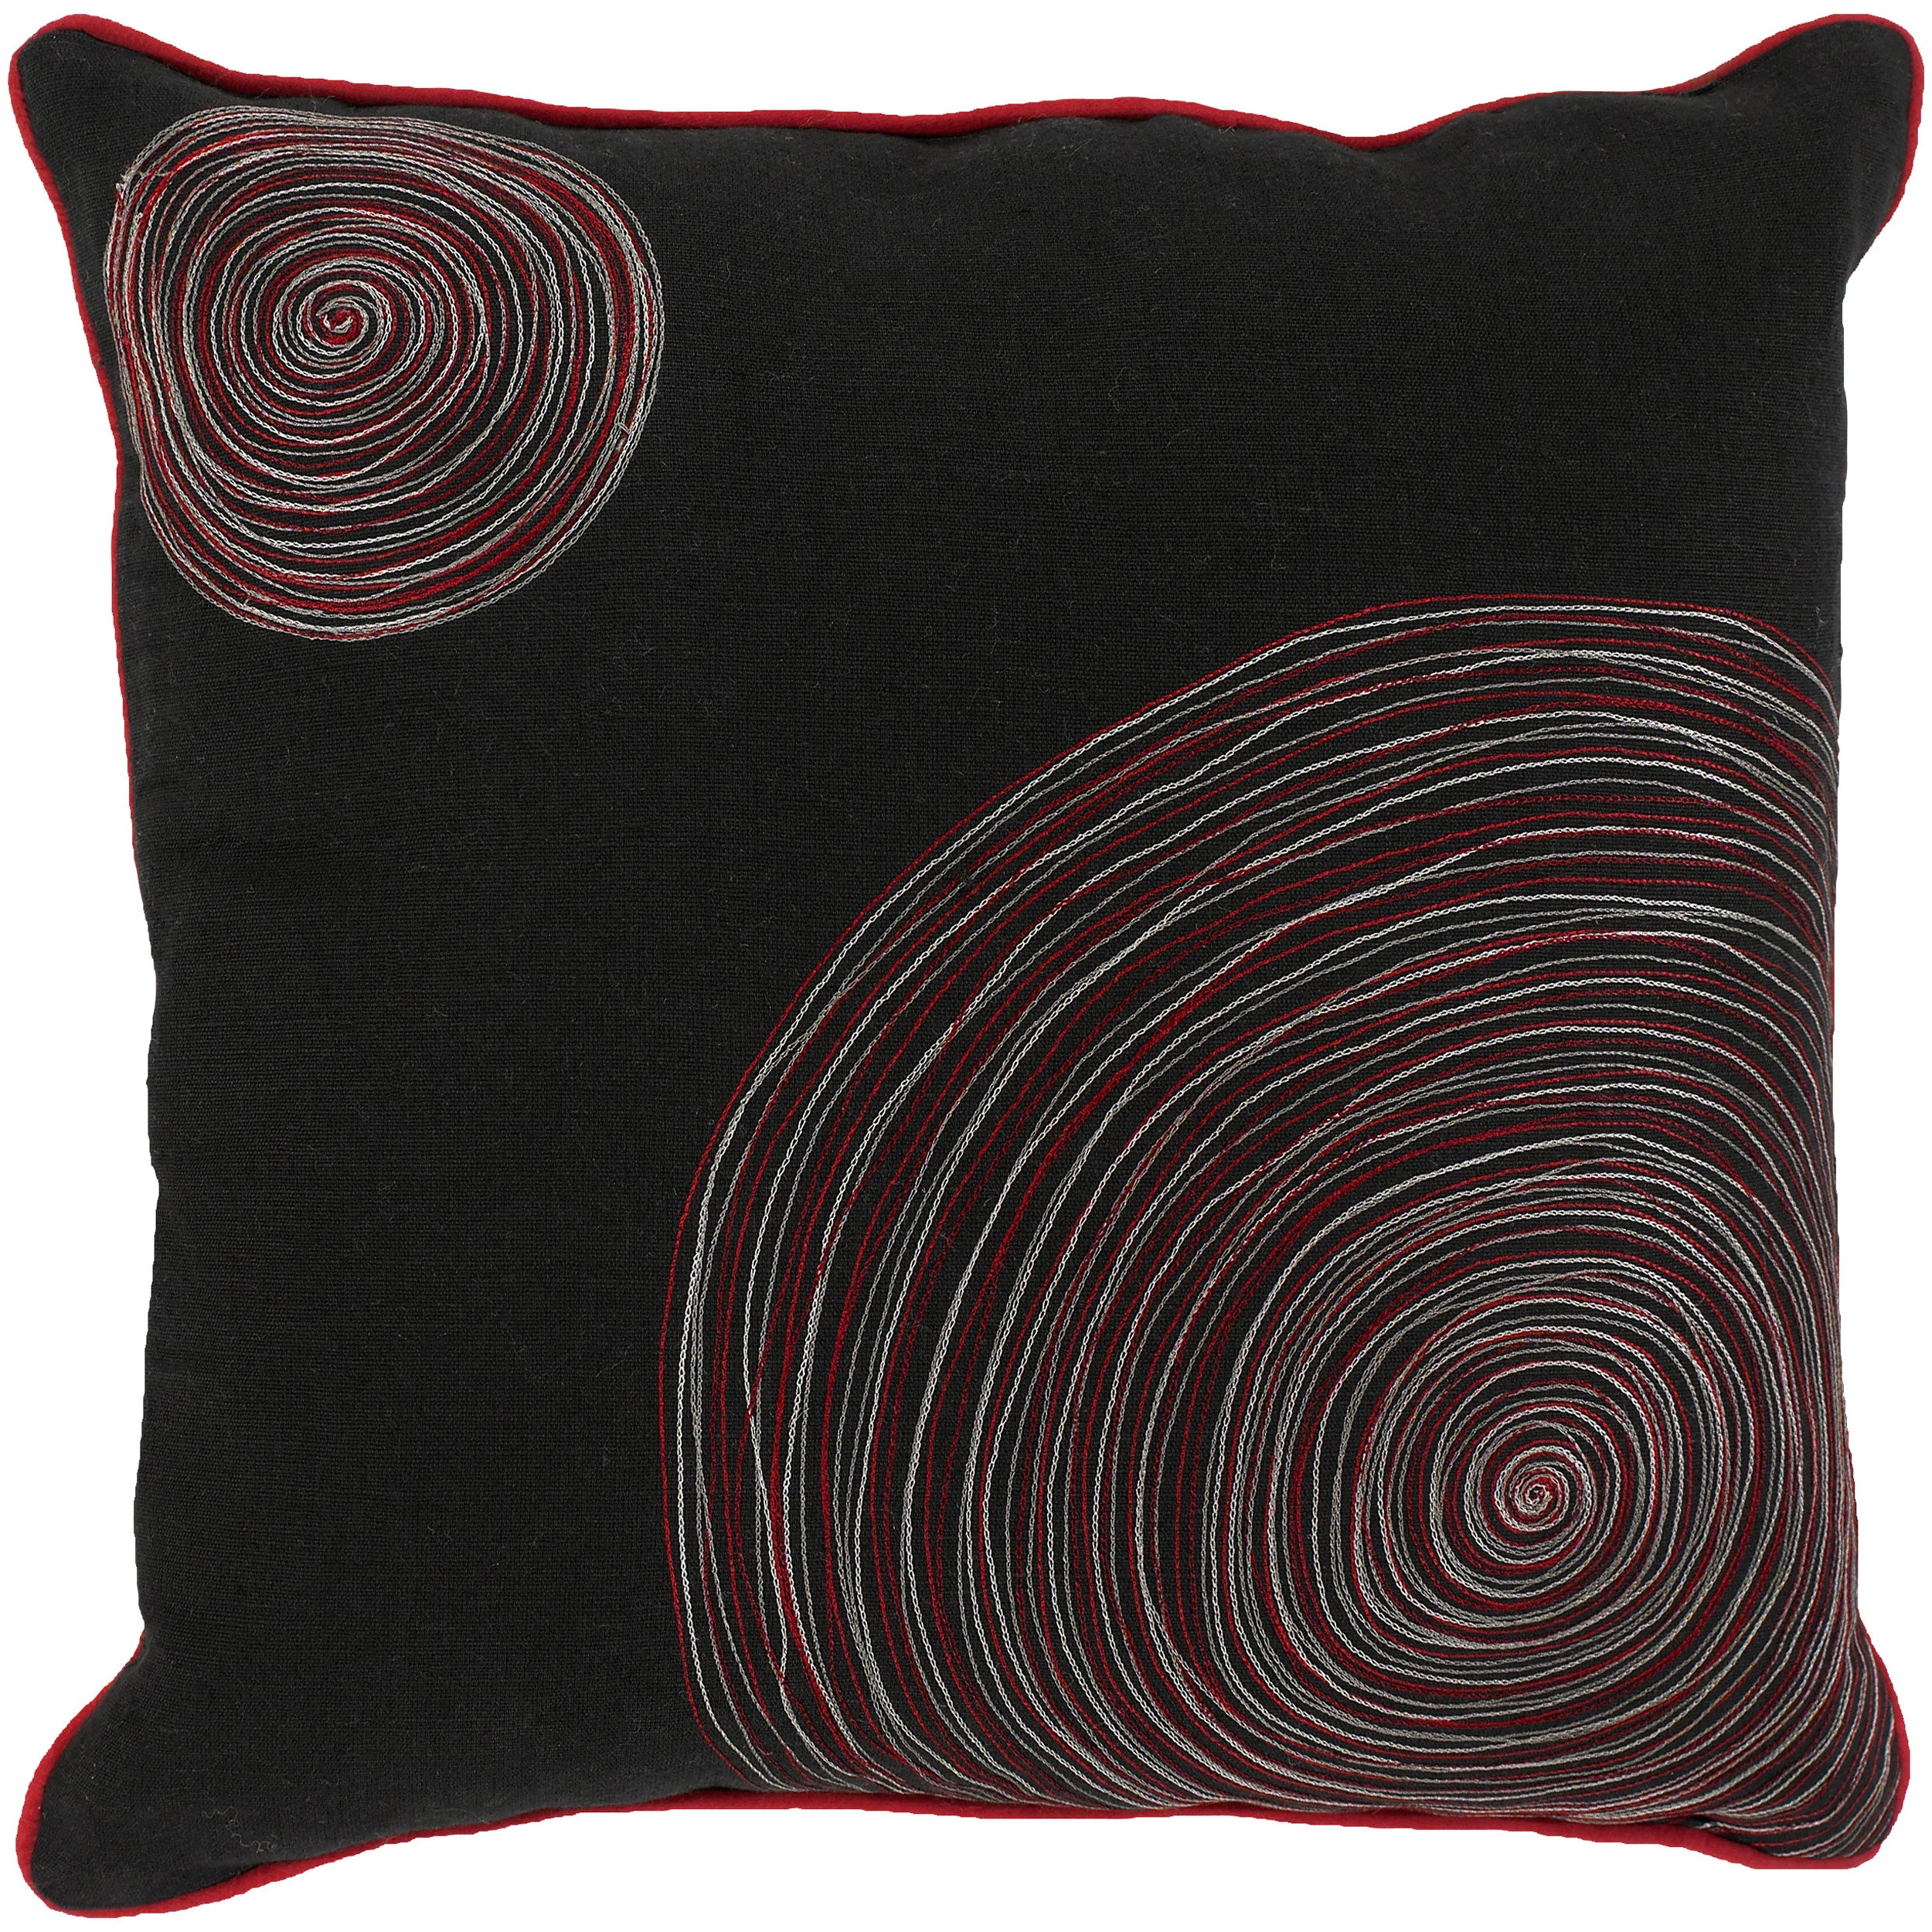 Decorative 18-inch Freiburg Pillow